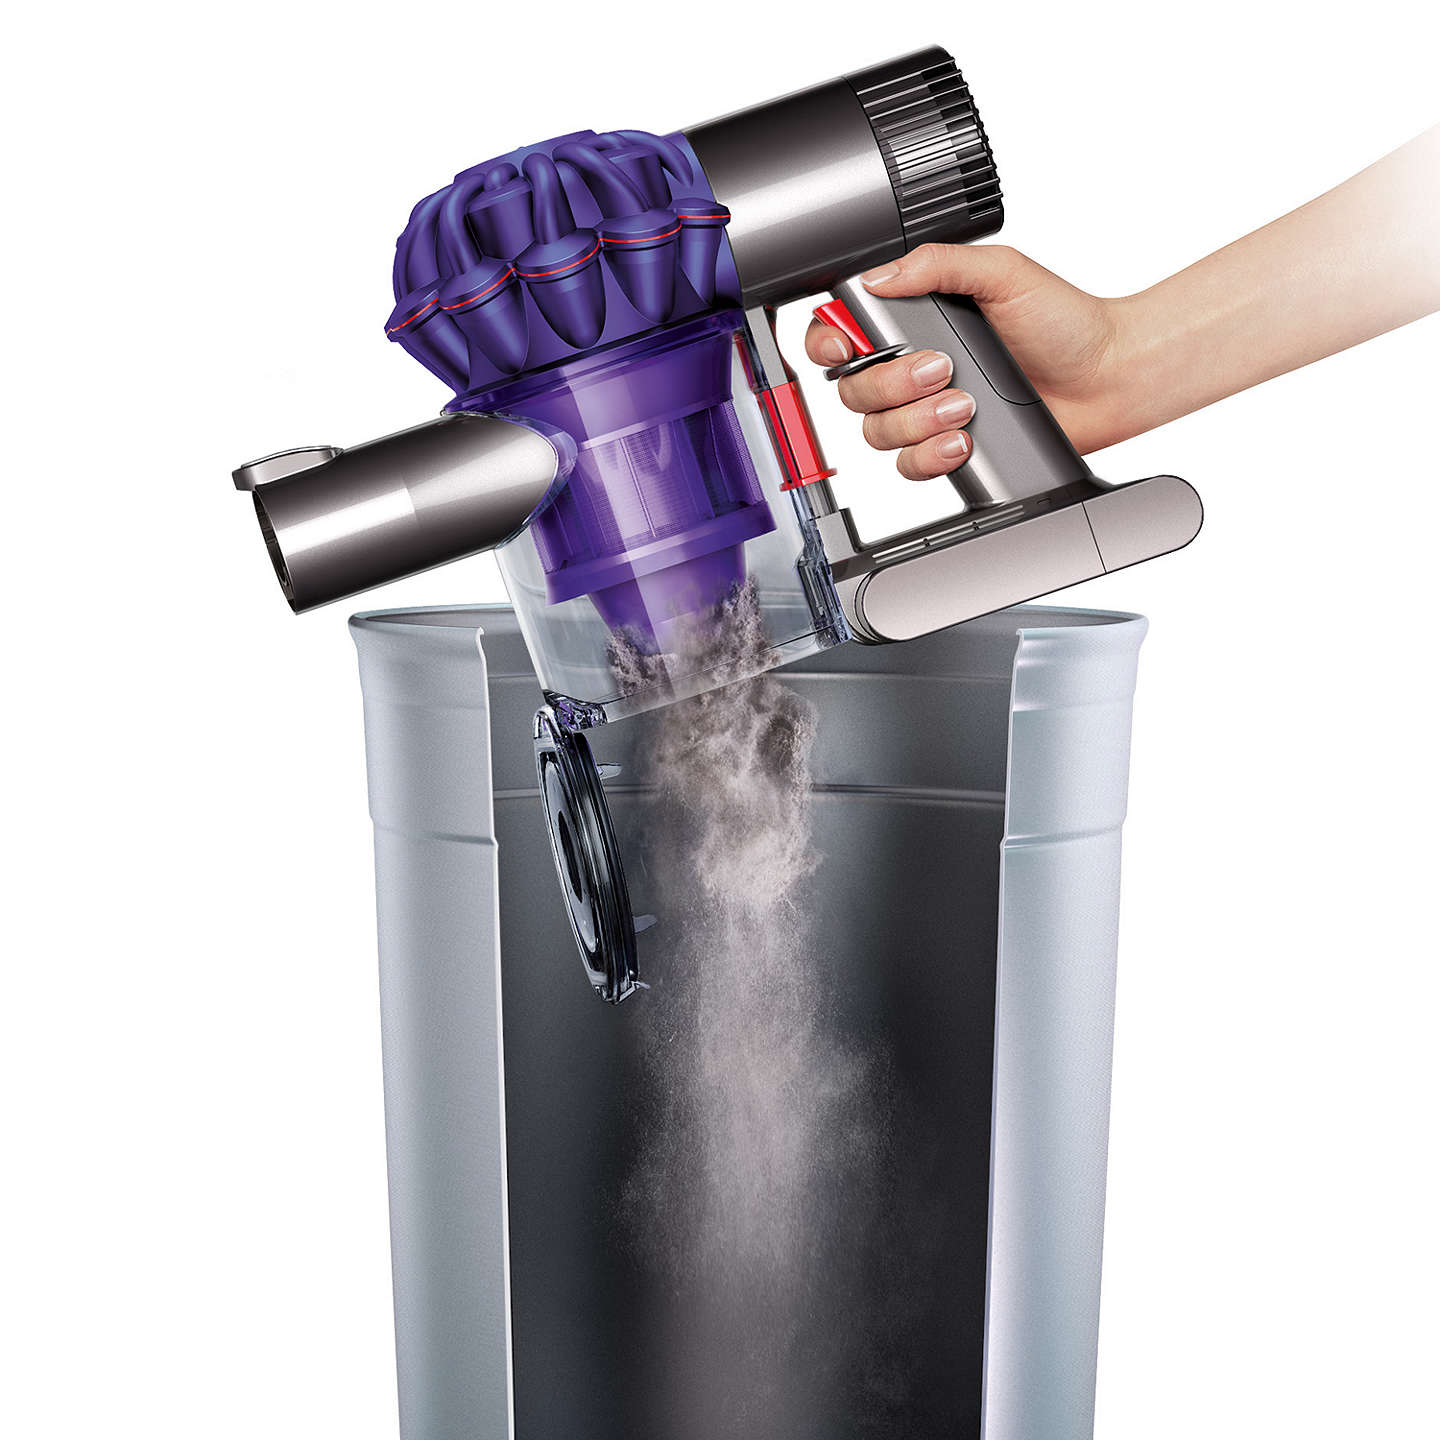 BuyDyson V6 Animal Cordless Vacuum Cleaner Online at johnlewis.com